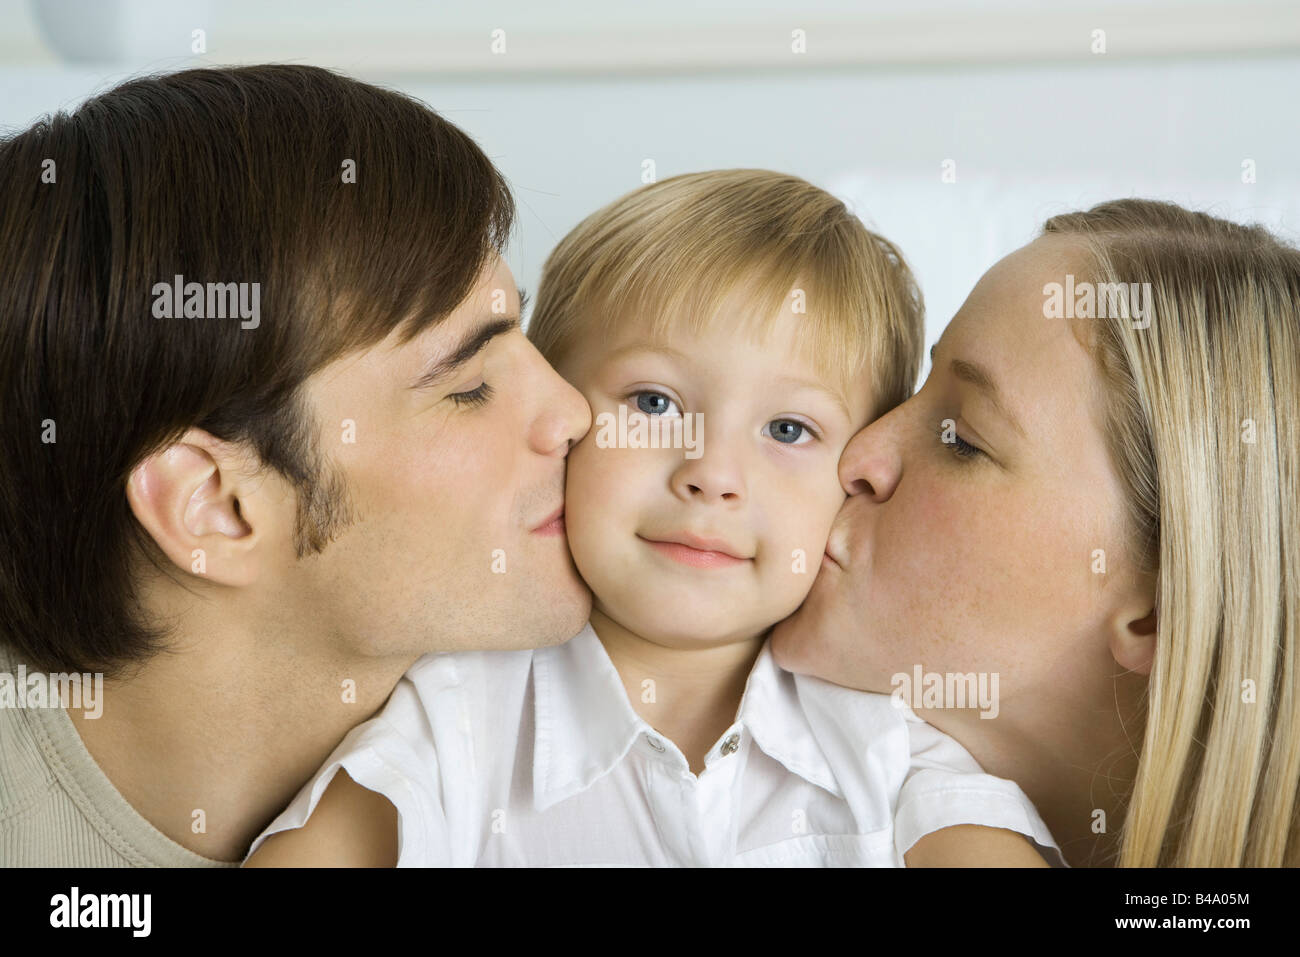 Parents kissing little boy's cheeks, boy smiling at camera Stock Photo